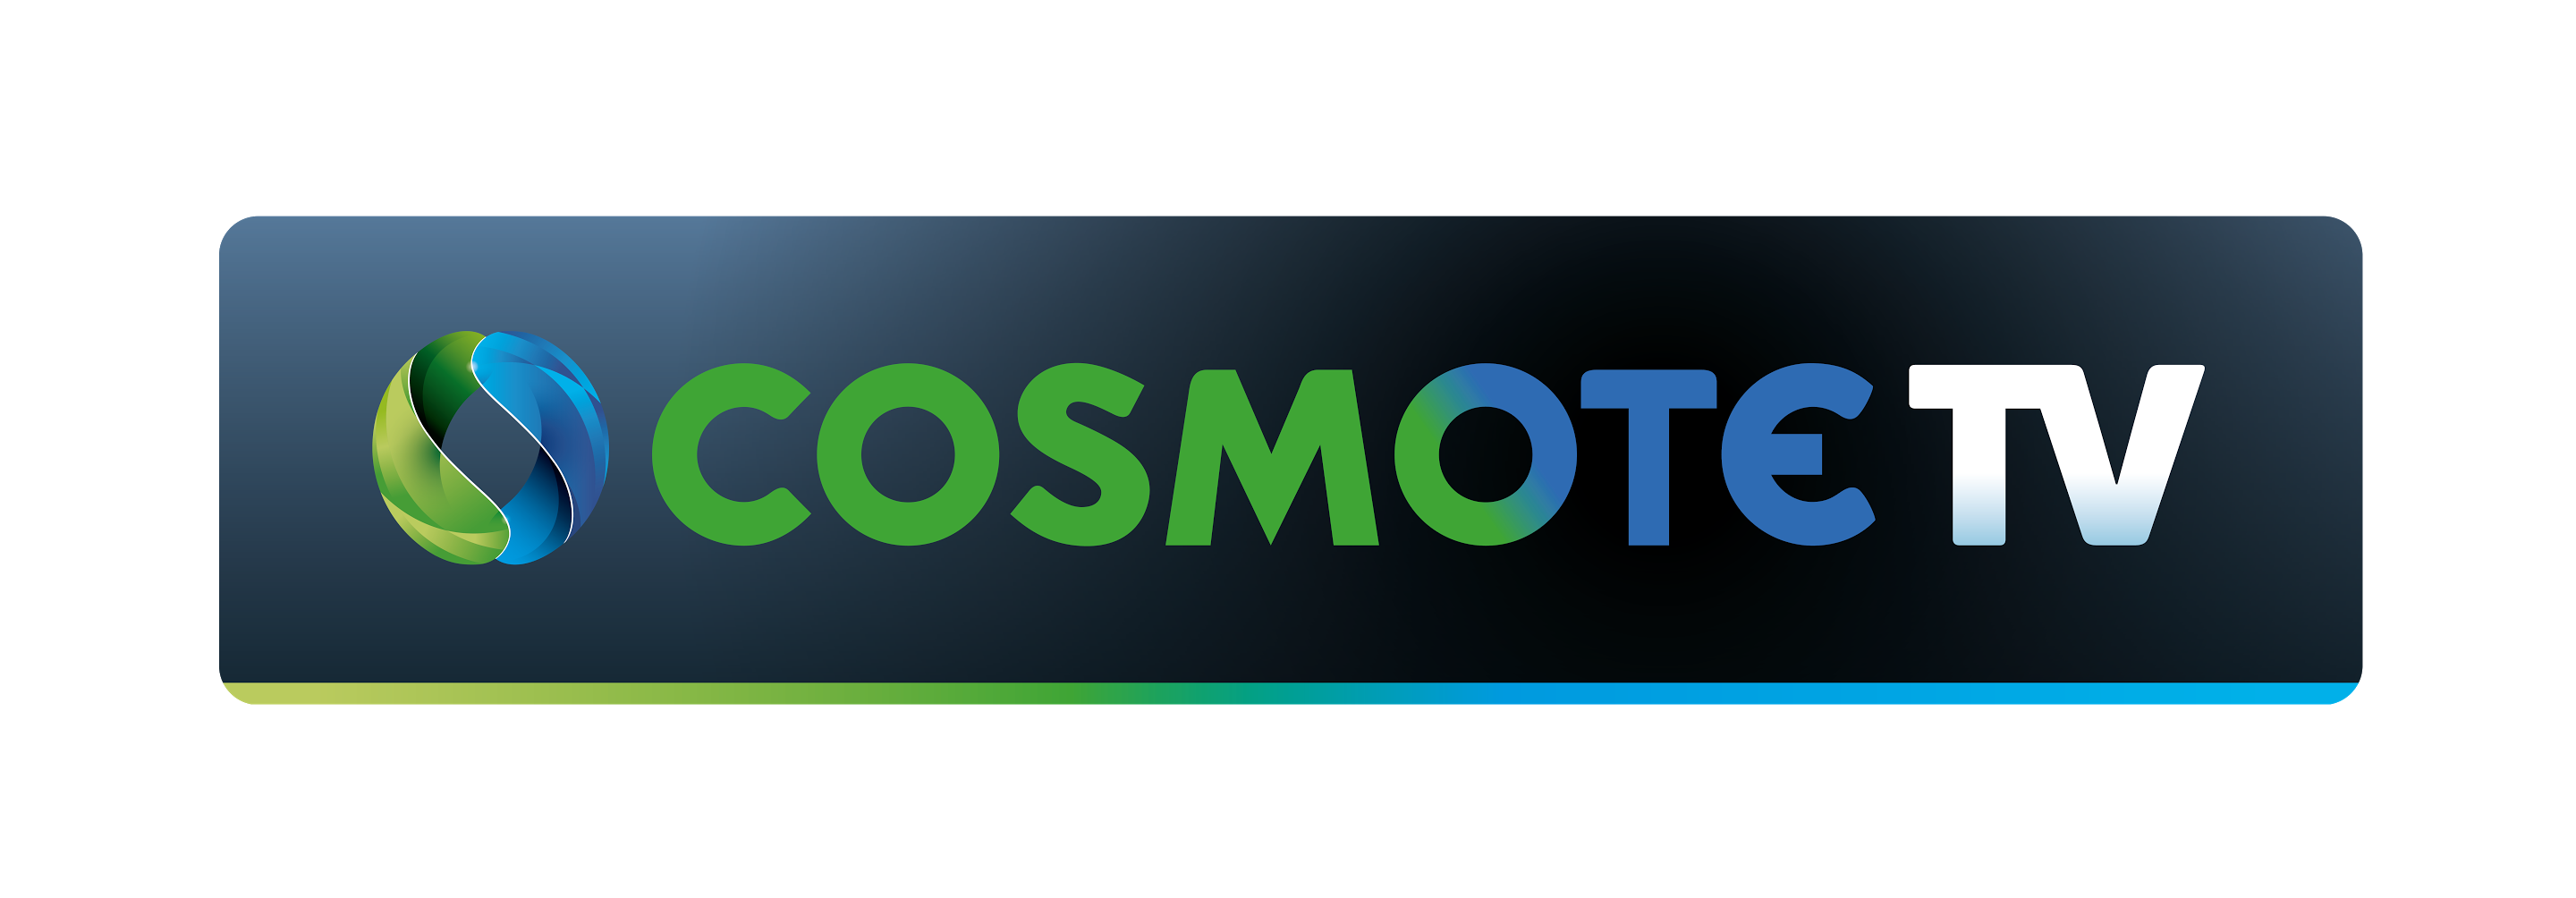 Cosmote TV History